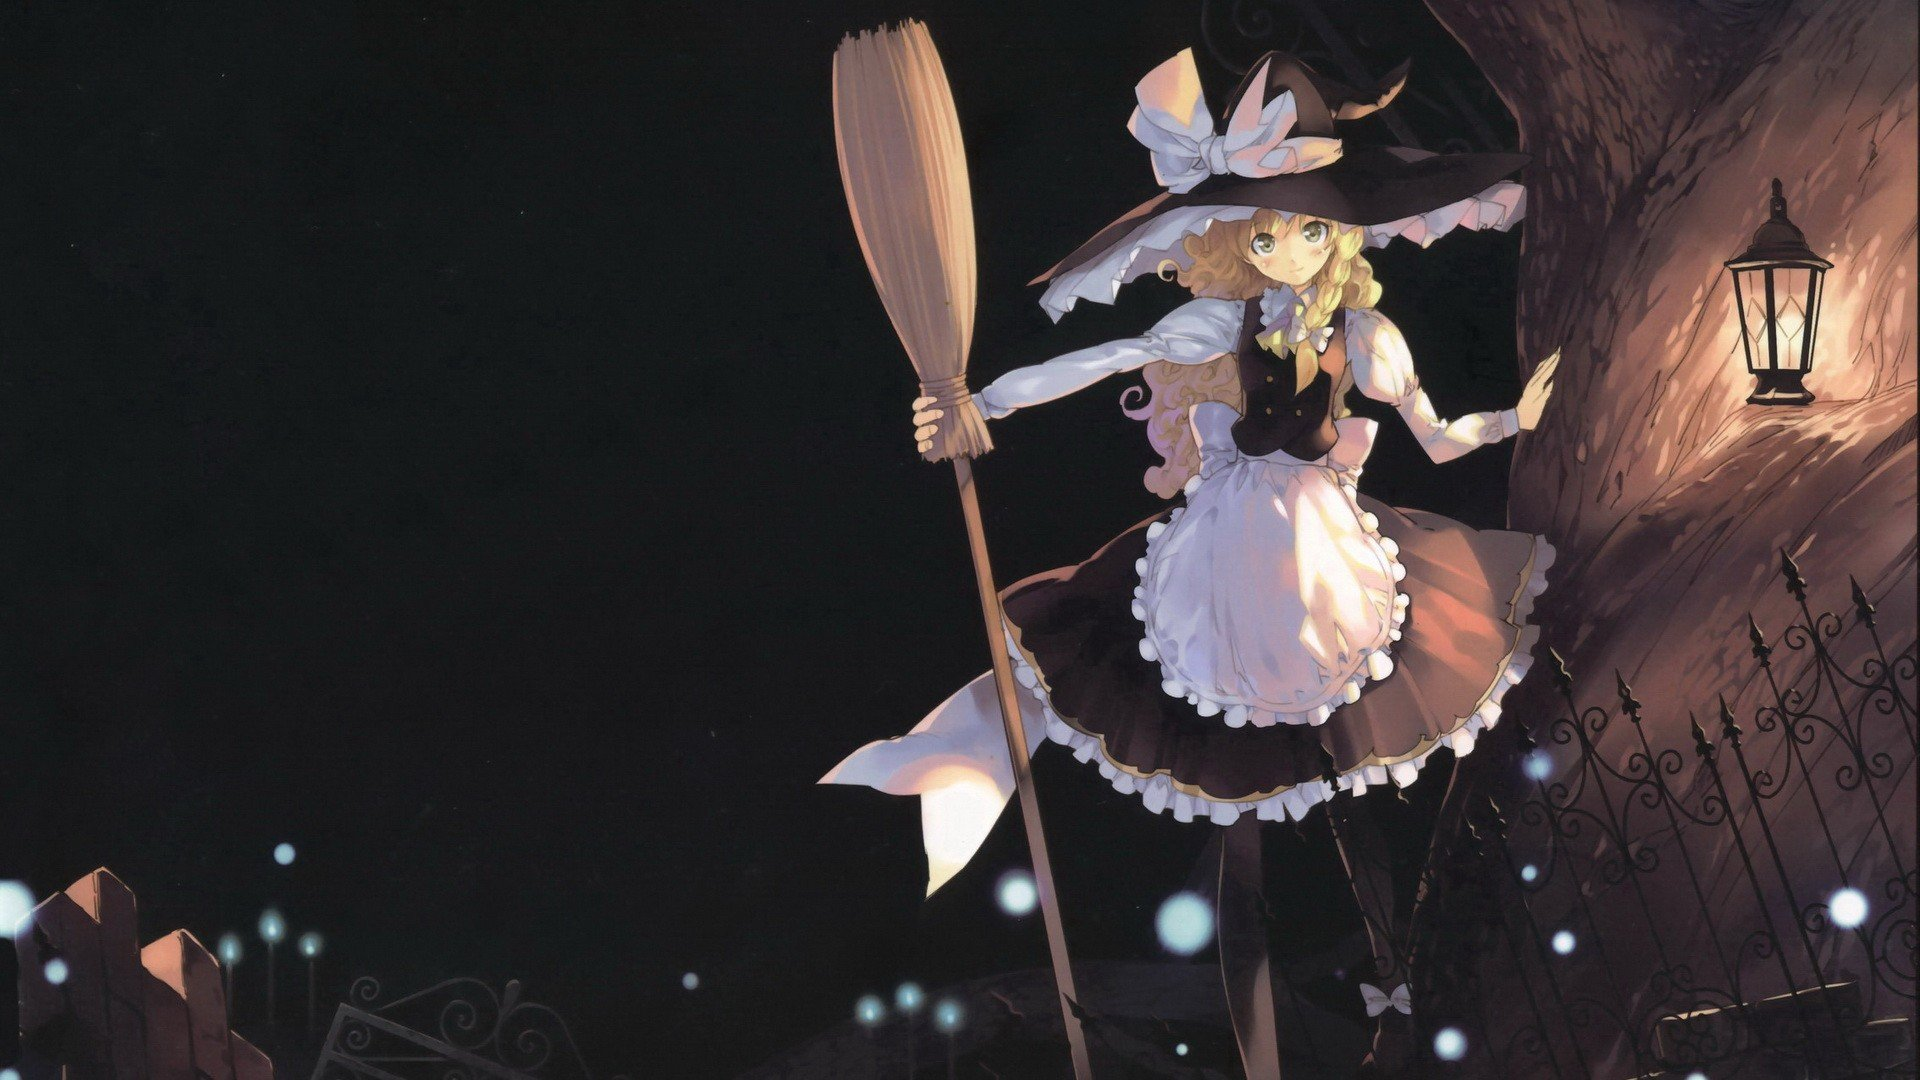 Halloween White Haired Anime Girl Wallpaper Blondes Video Games Touhou Trees Dark Dress Night Fences